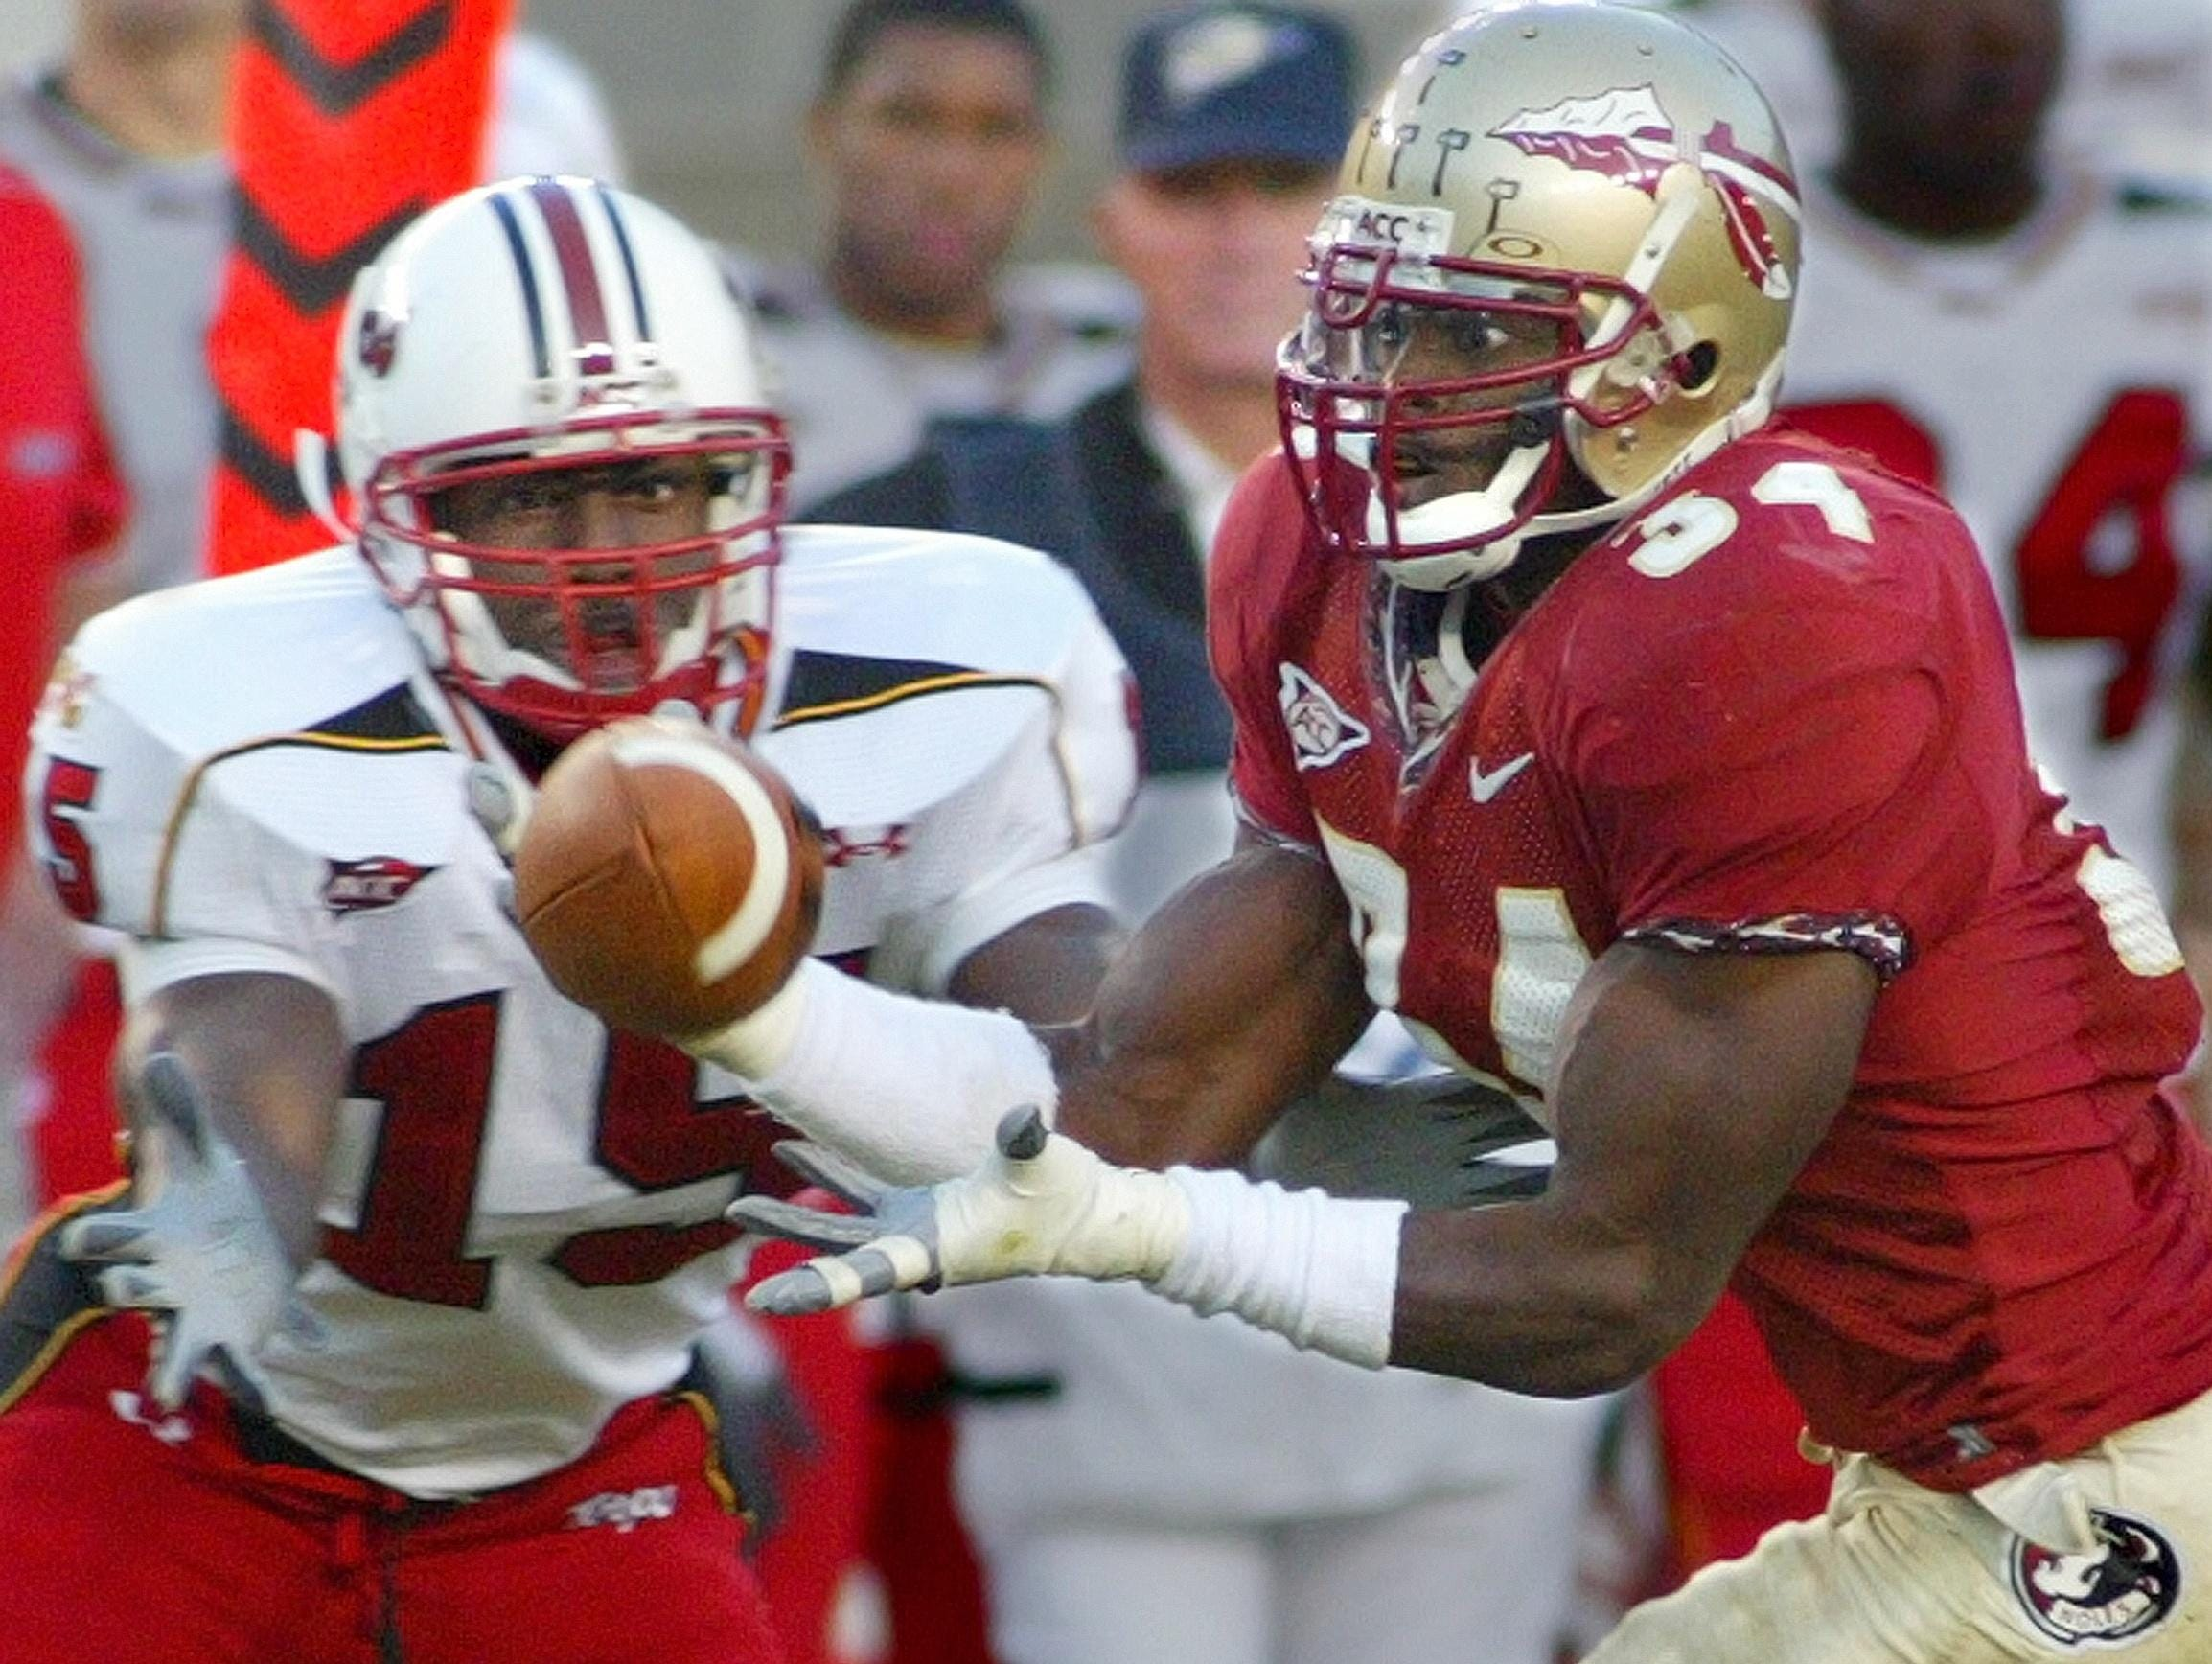 FSU's Ernie Sims (34) steps in front of Maryland's Jason Goode to intercept a pass in the fourth quarter of a 2005 game.